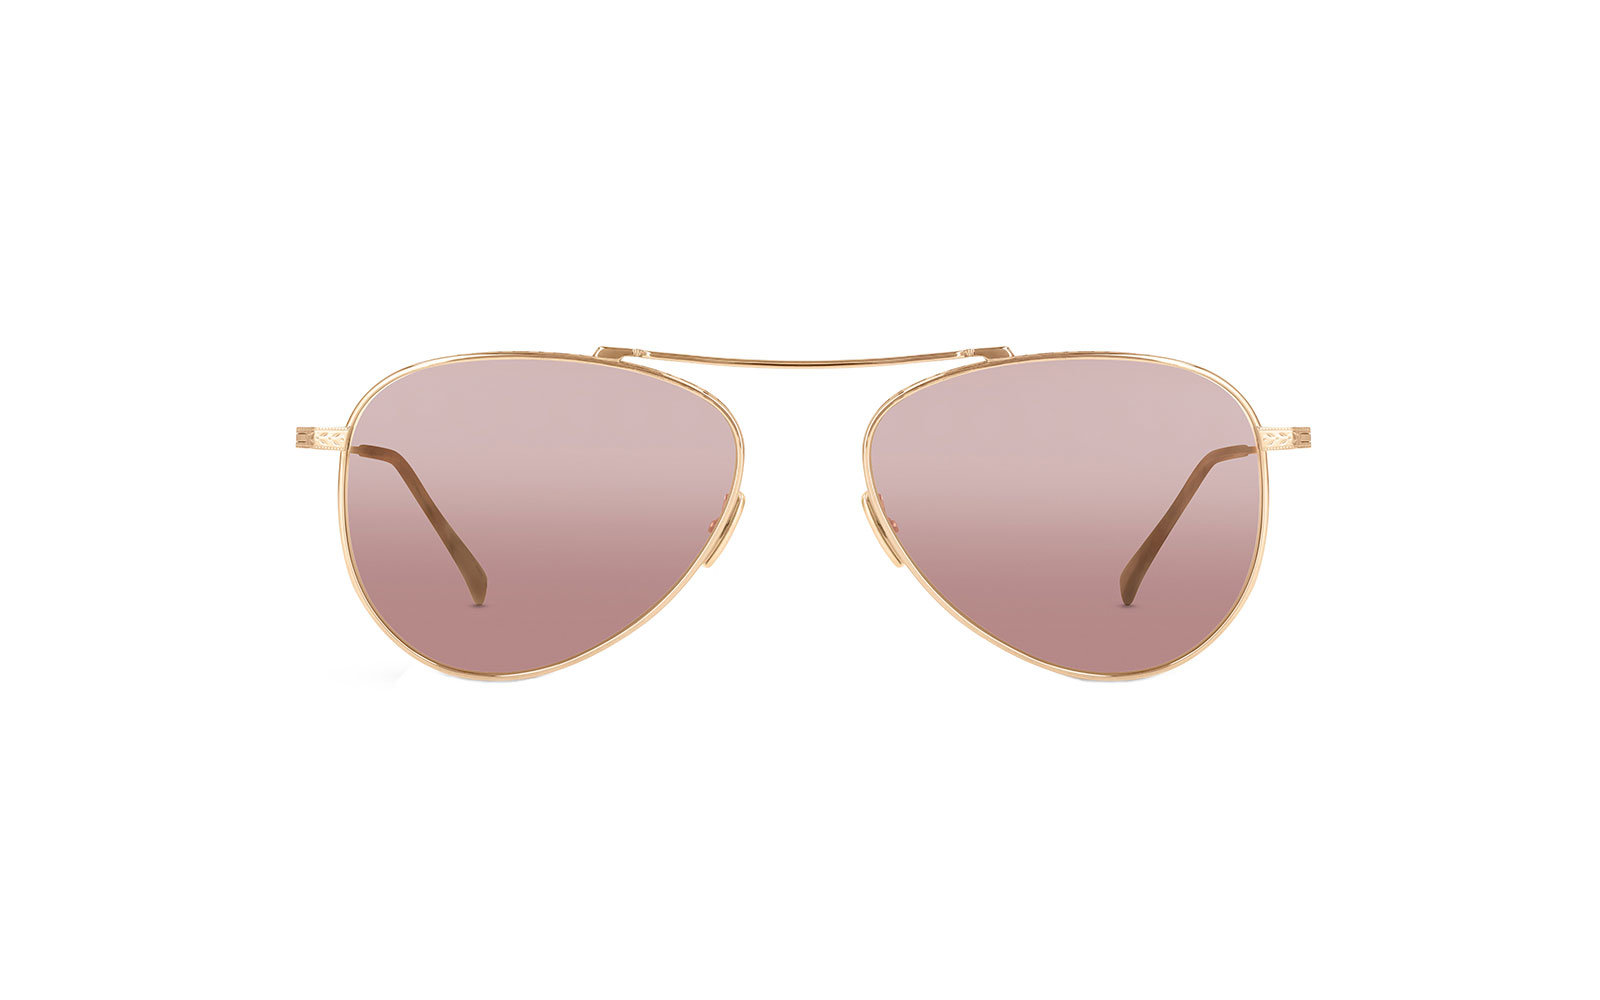 Mr. Leight Ichi S in Rose Gold-Moonstone